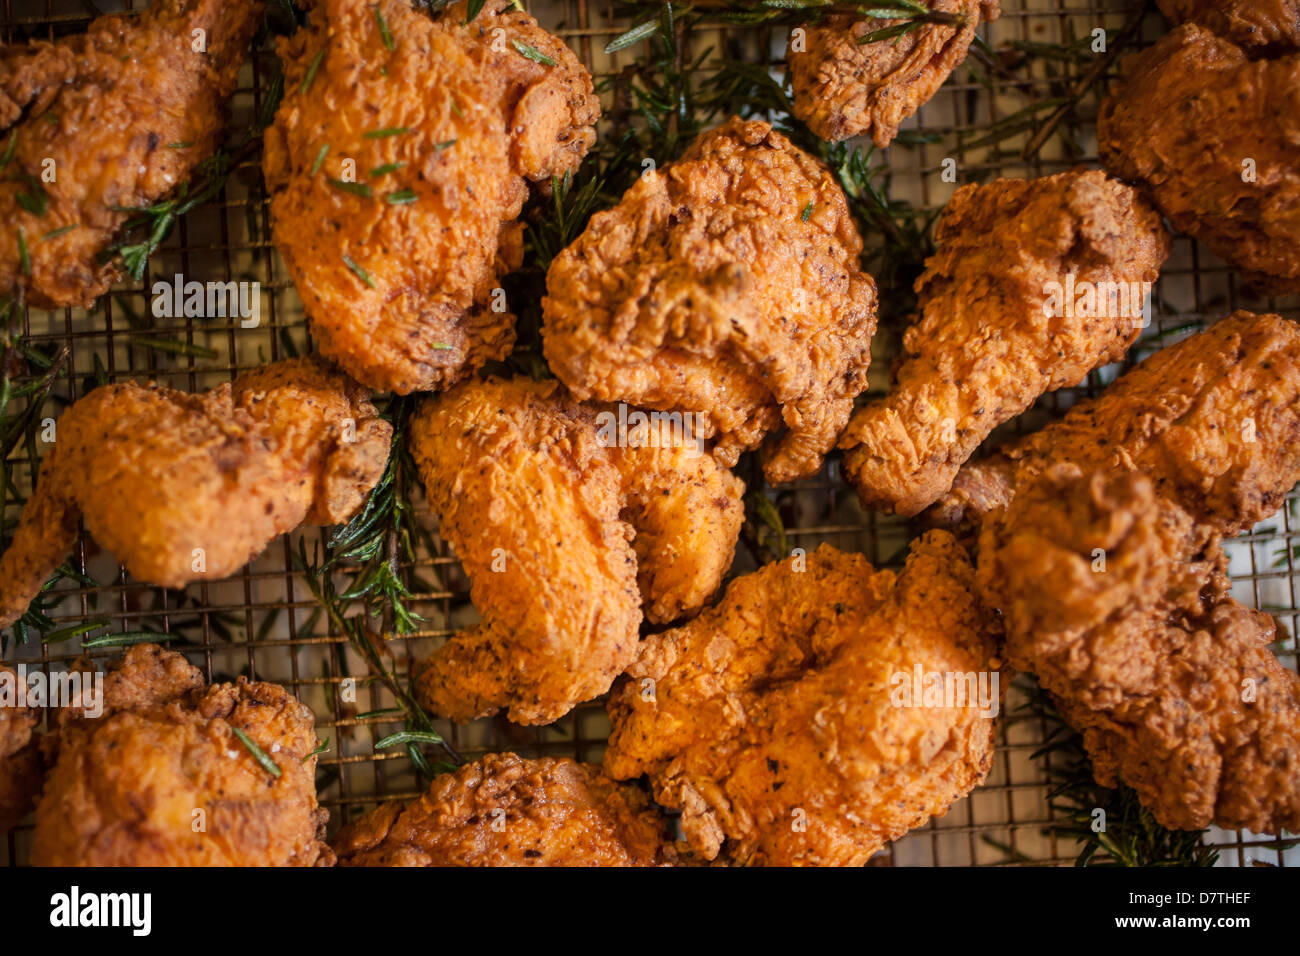 fried chicken in the fryer - Stock Image